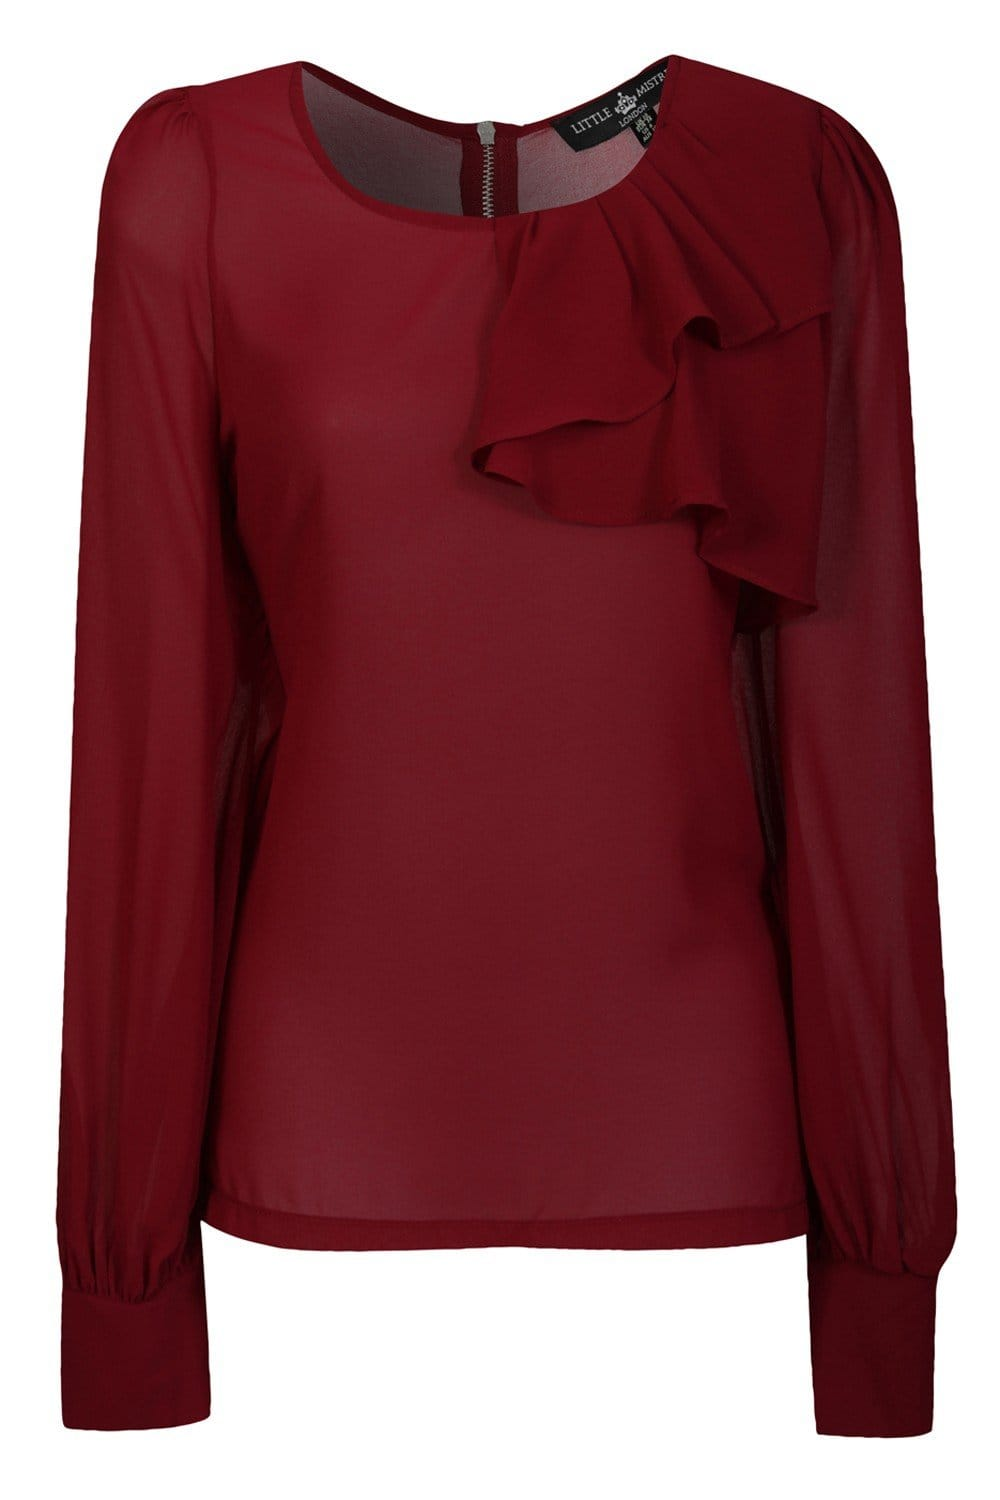 Find great deals on eBay for long sleeve chiffon tops. Shop with confidence.